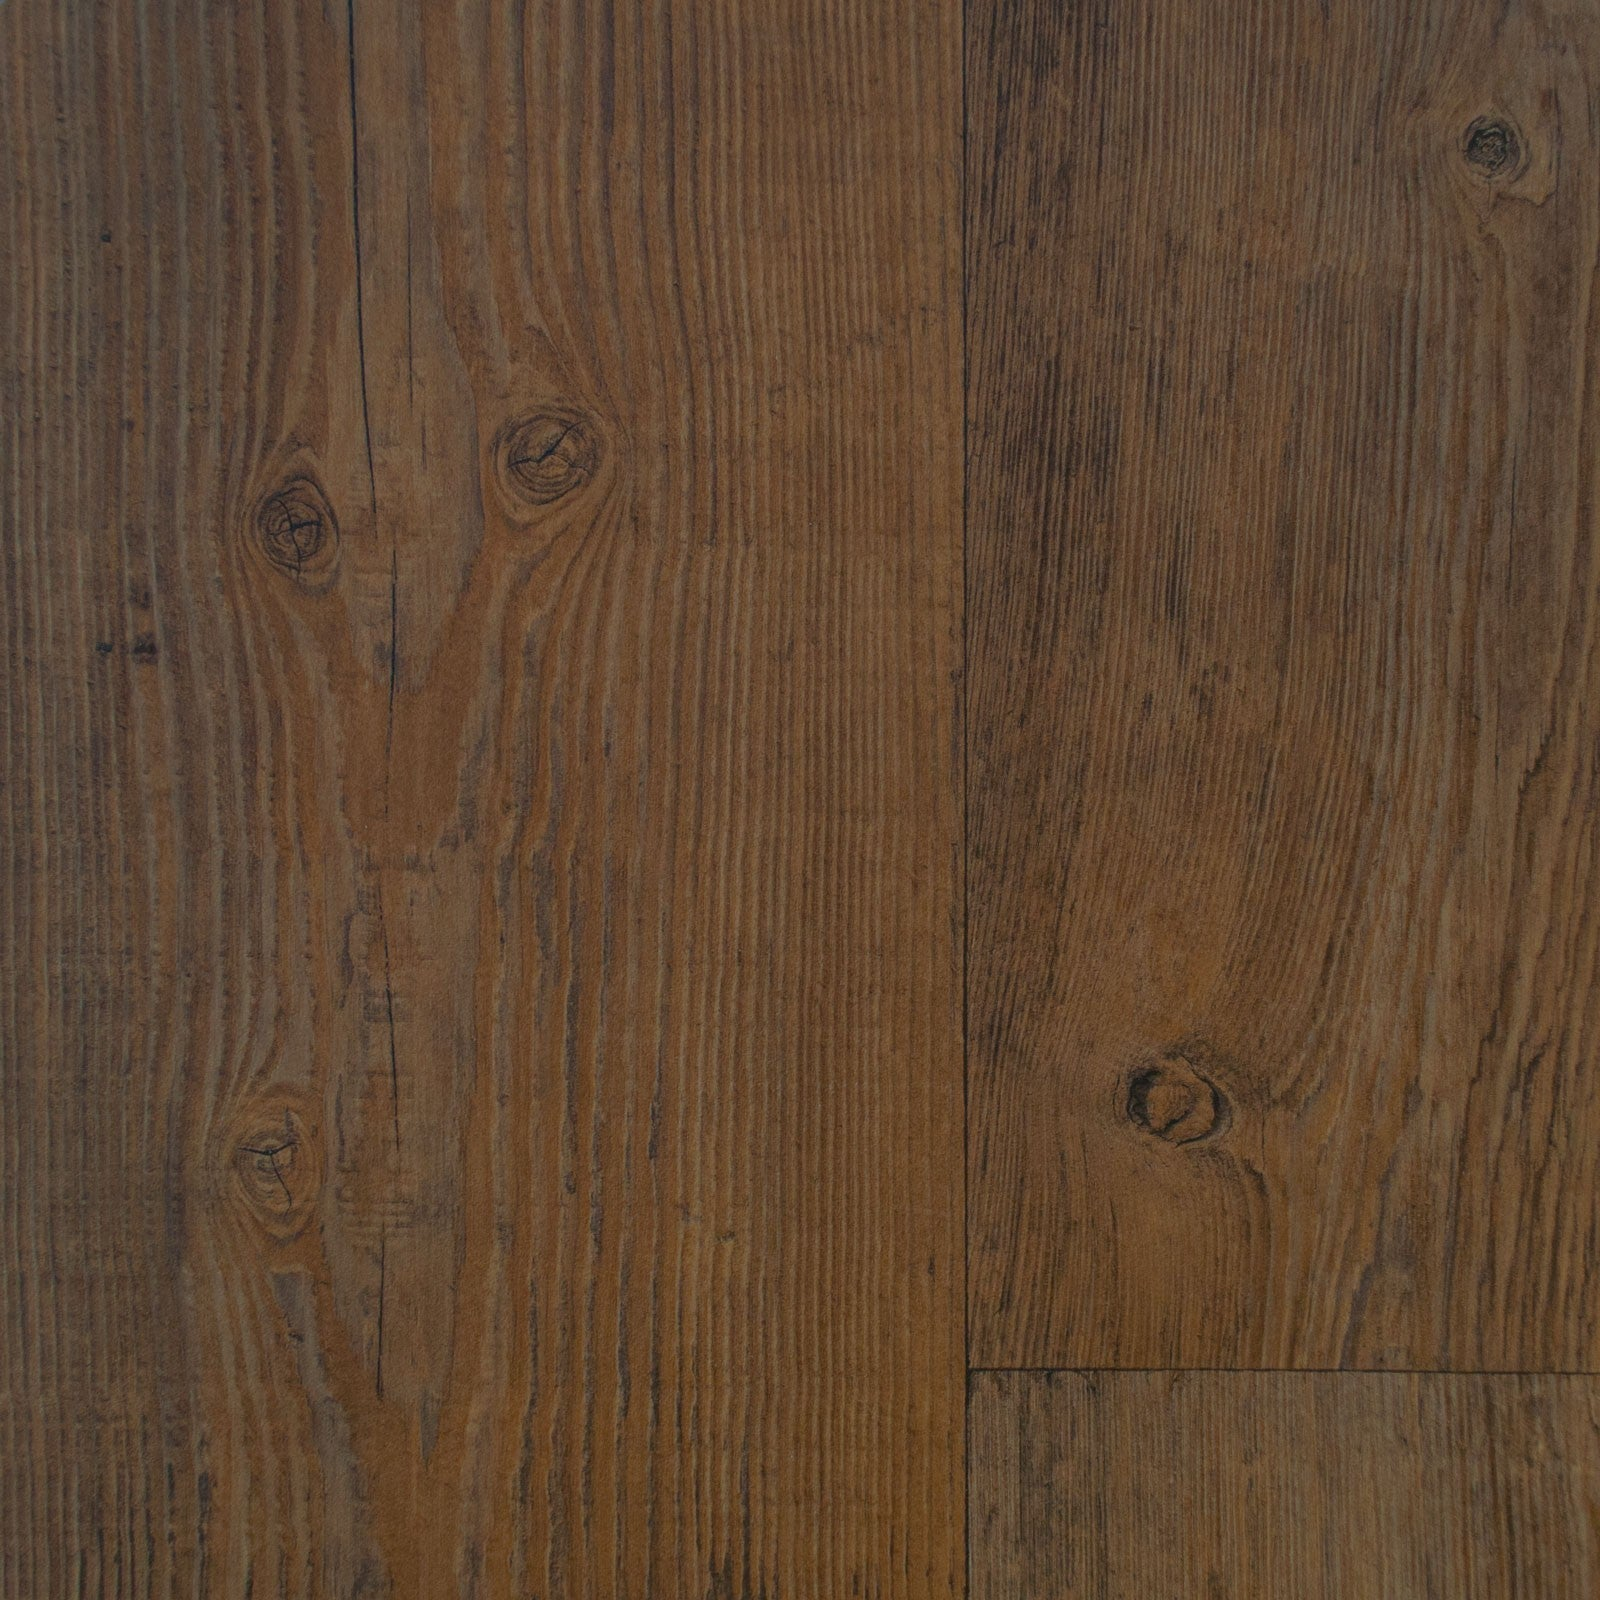 Old Oak Wood Plank Primo Vinyl Flooring - Far